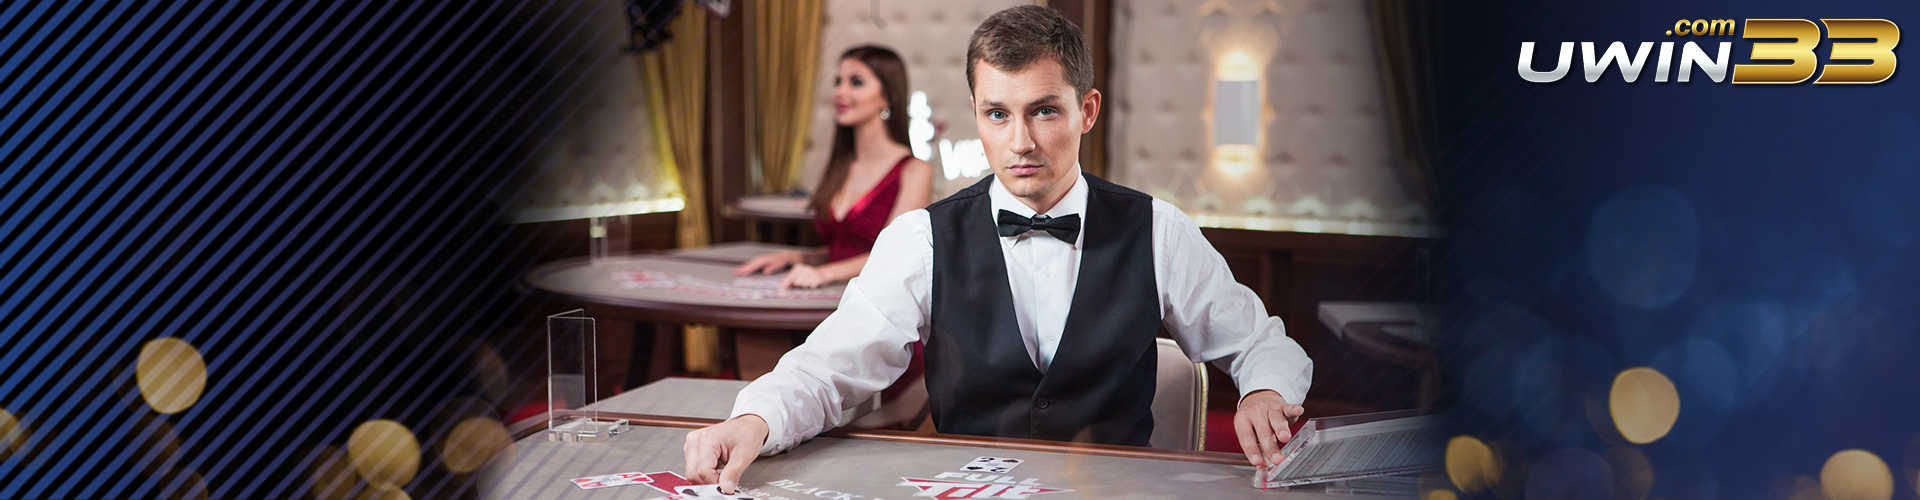 Secured Online Casino for Mobile